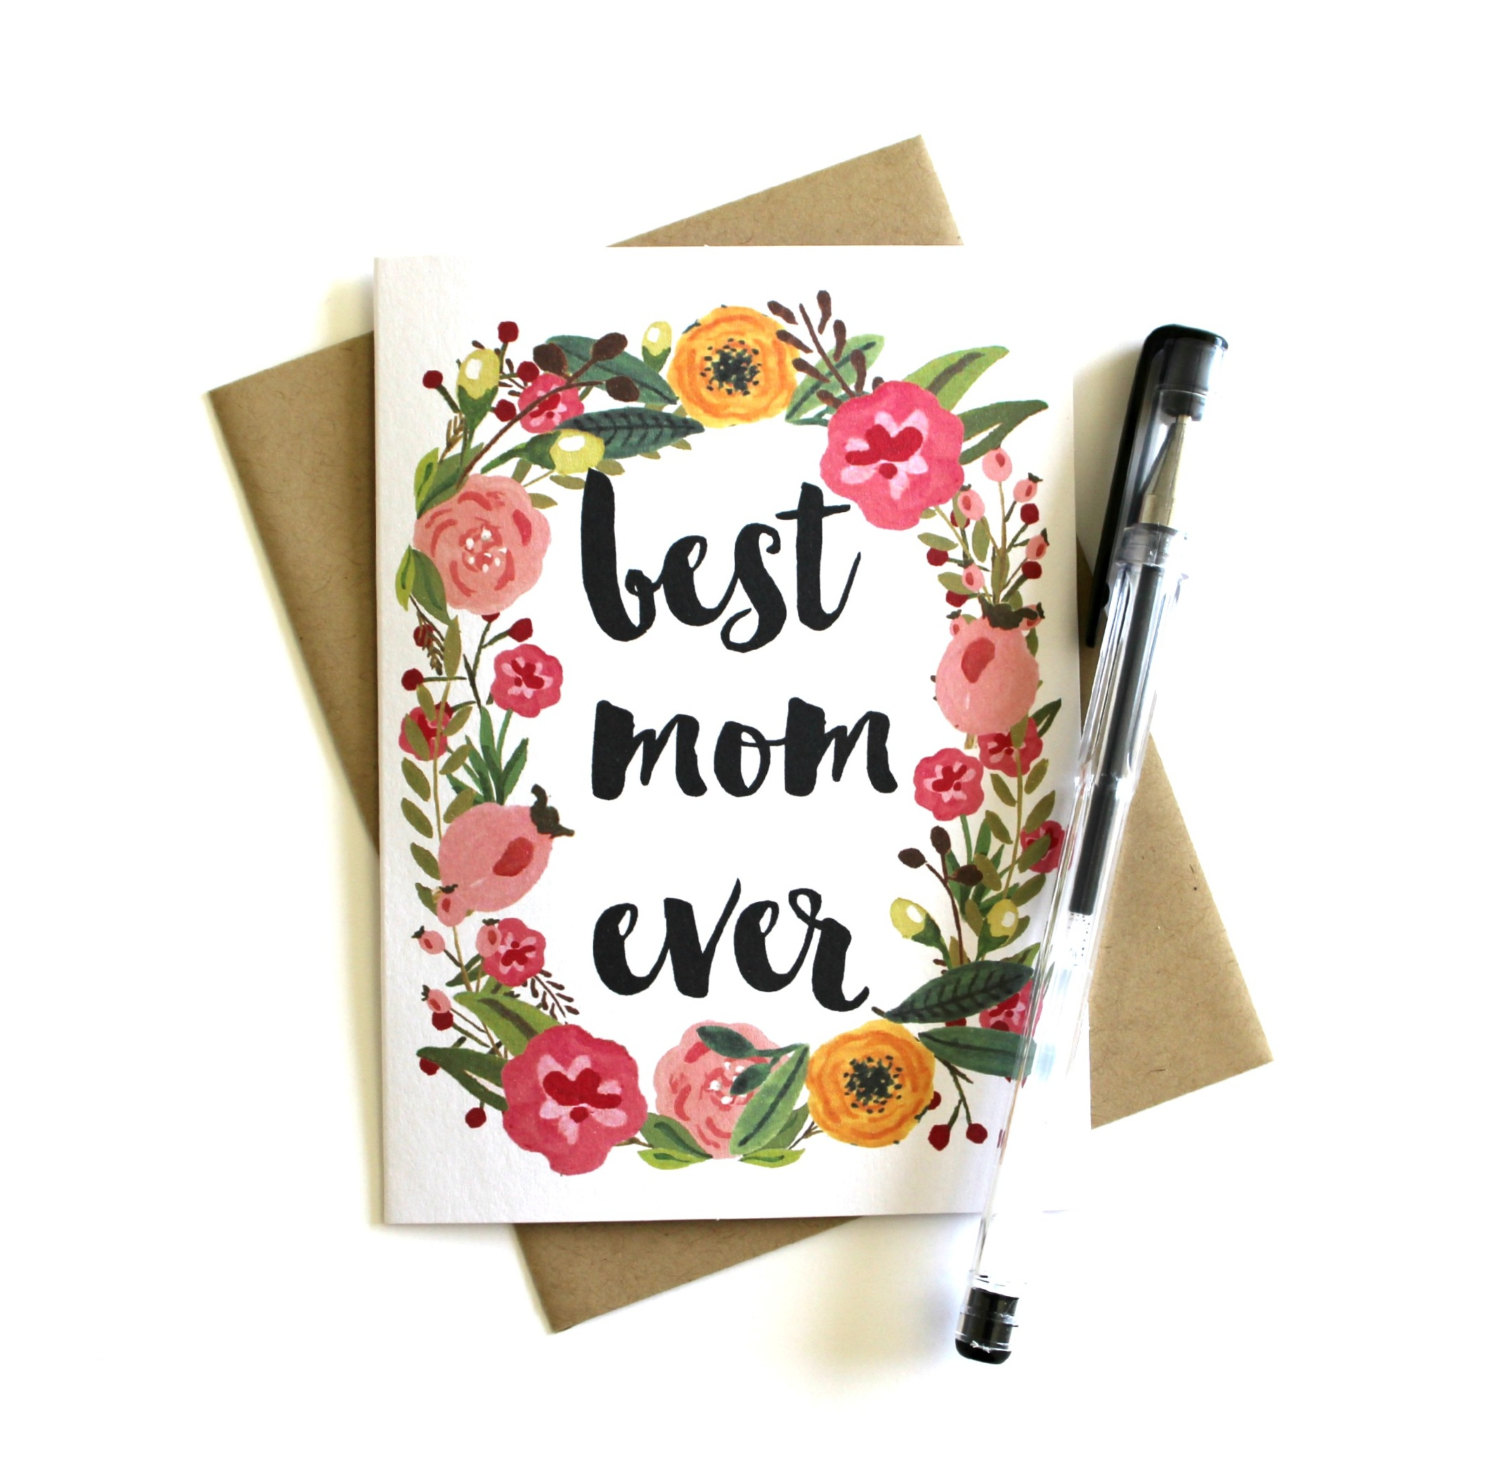 15 Mothers Day Cards On Etsy That Are Unique And Heartfelt Because